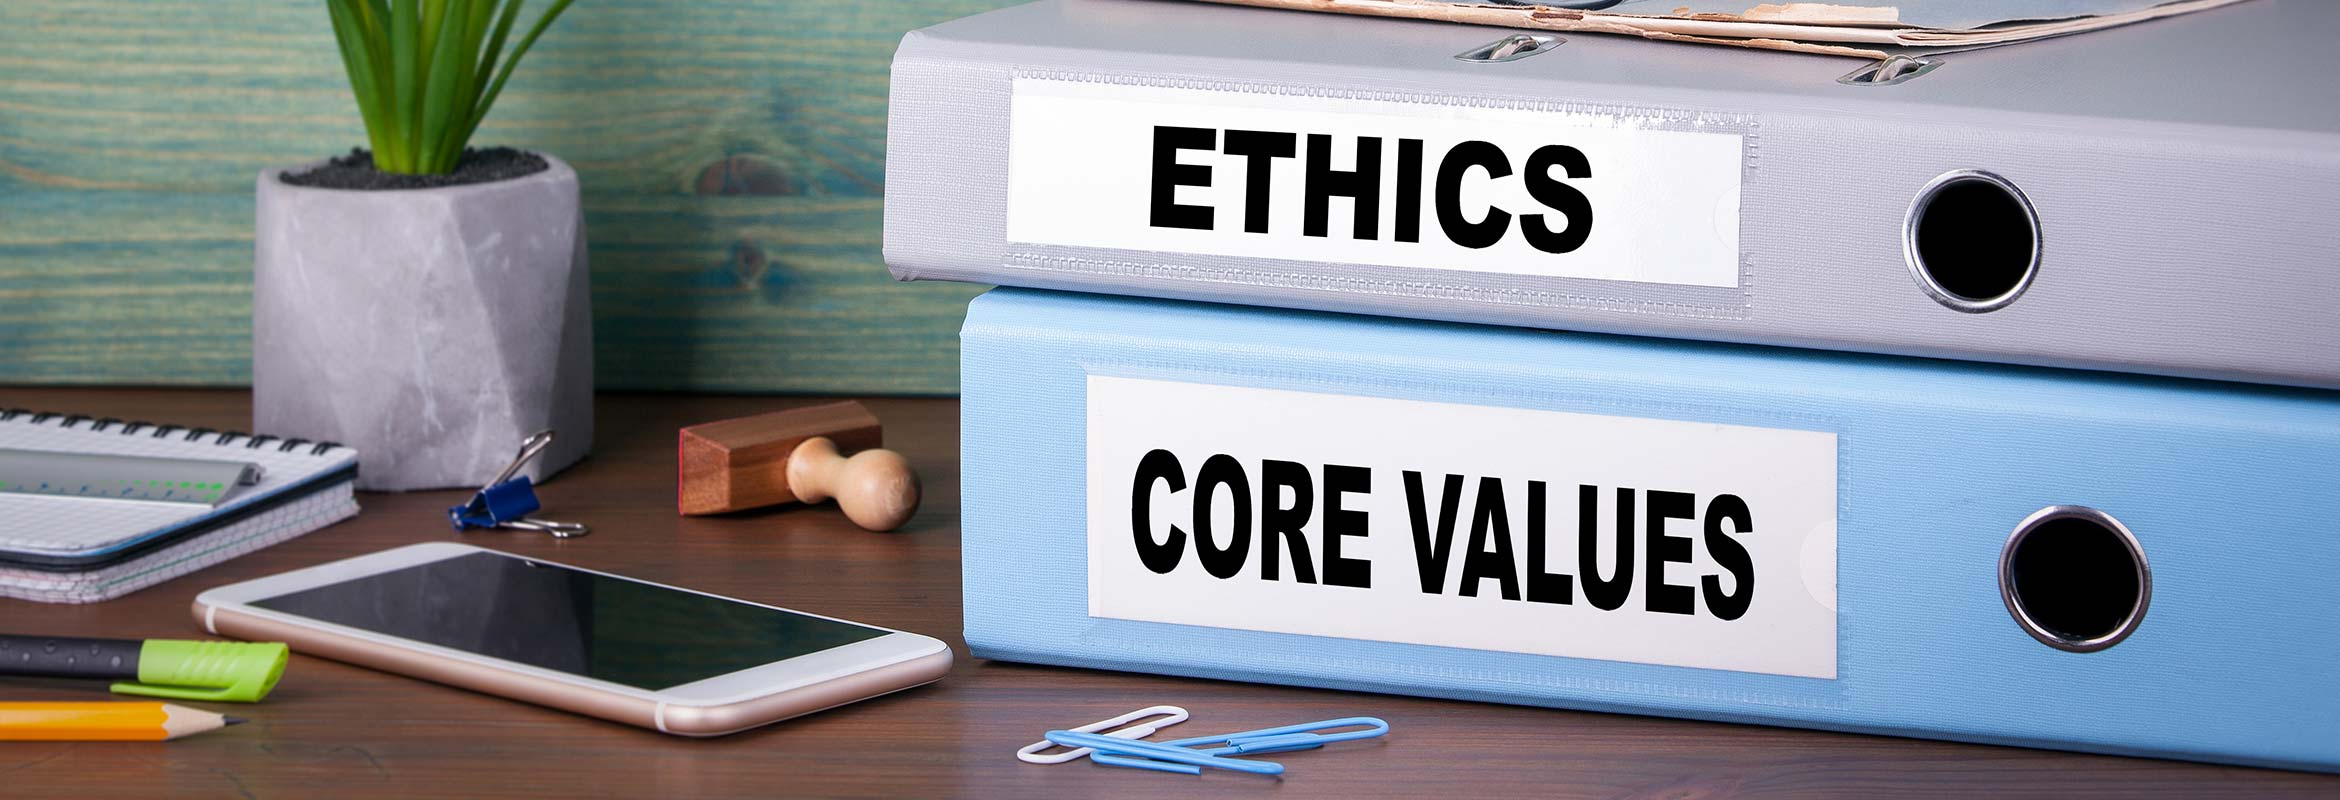 Image of a smartphone and binders with the words ethics and core values.